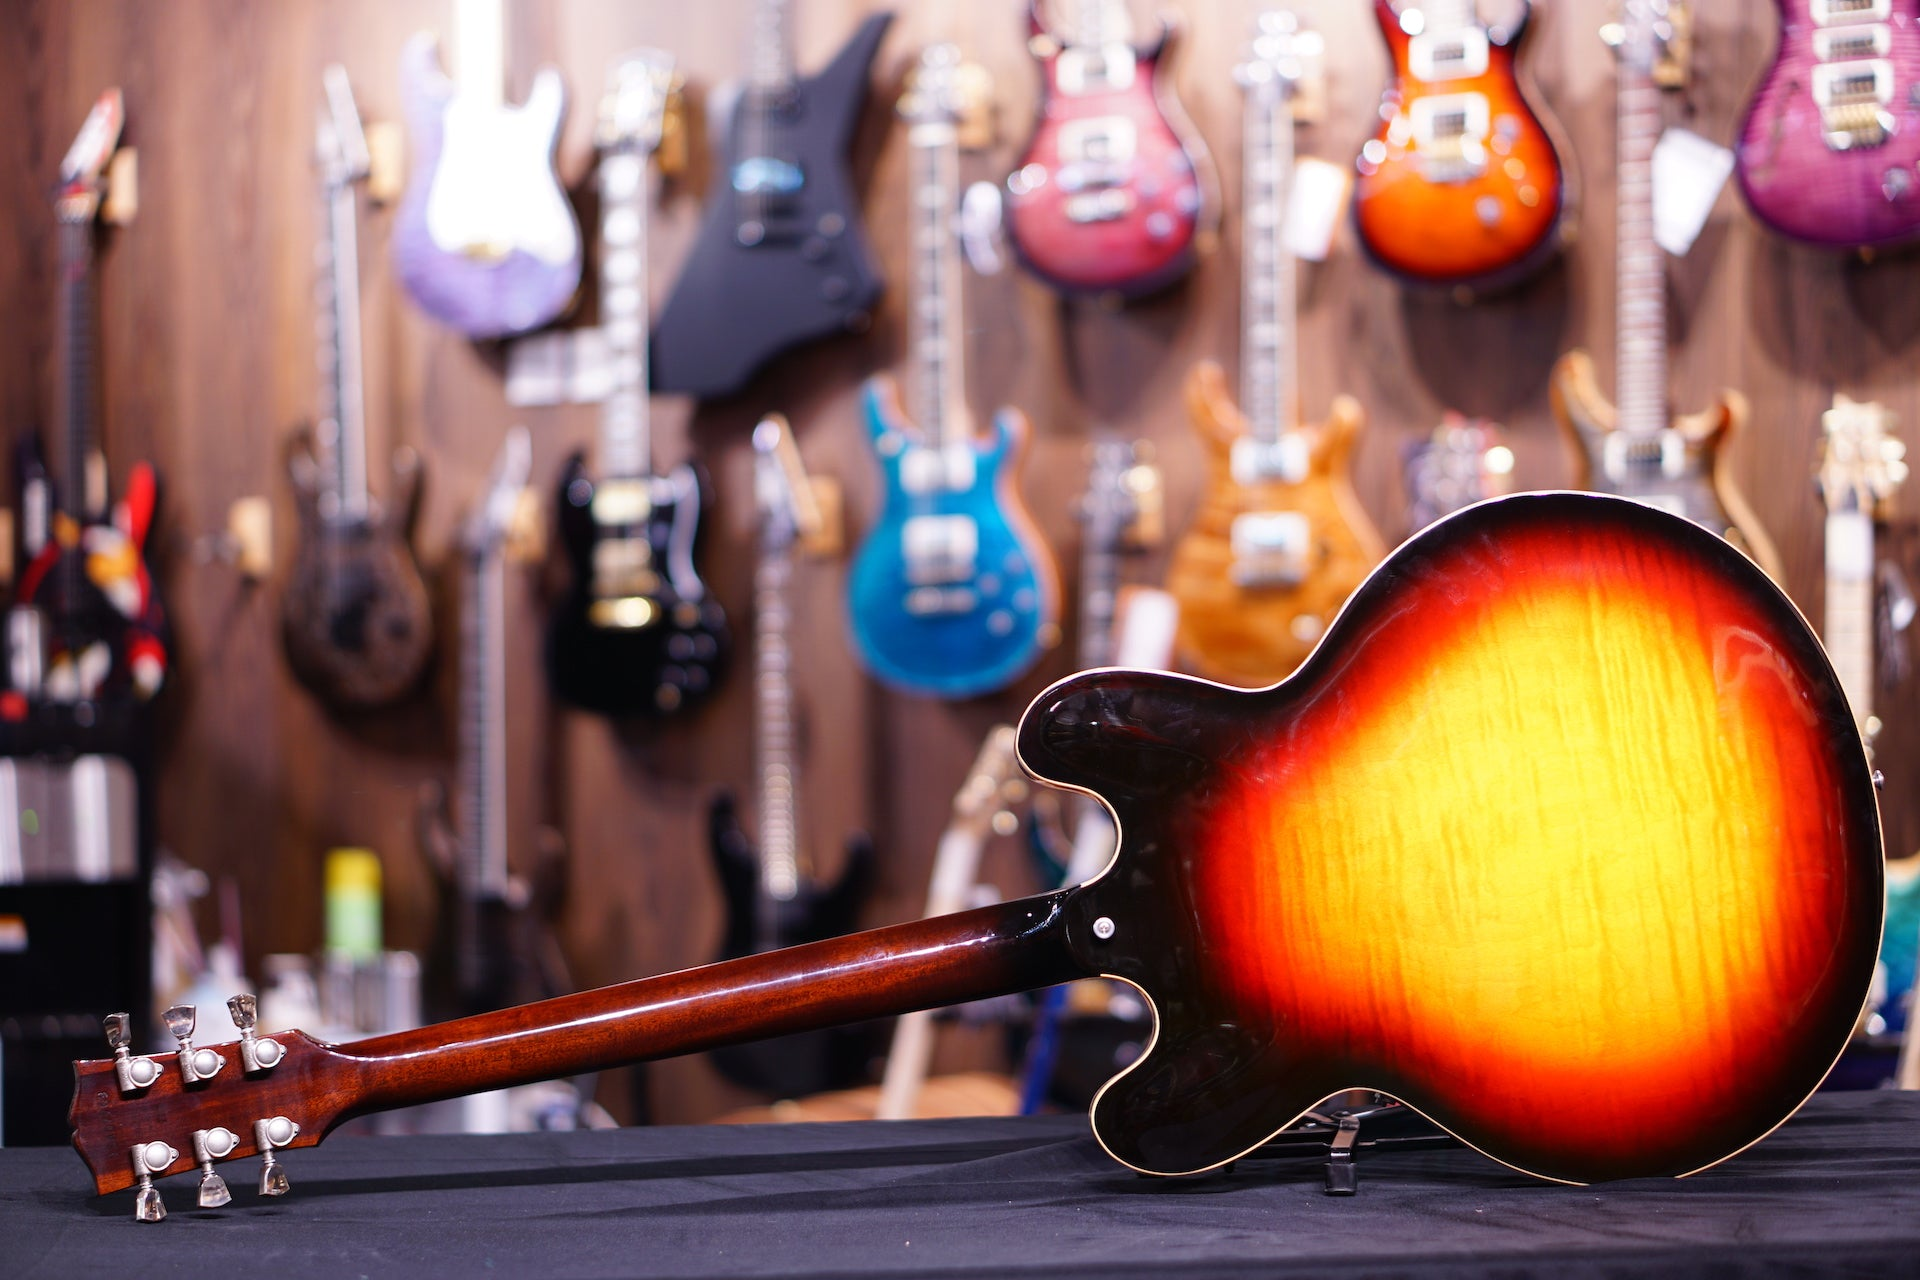 Gibson ES335 Figured 2018 - Antique Sunset Burst 709 GIBSON - HIENDGUITAR.COM